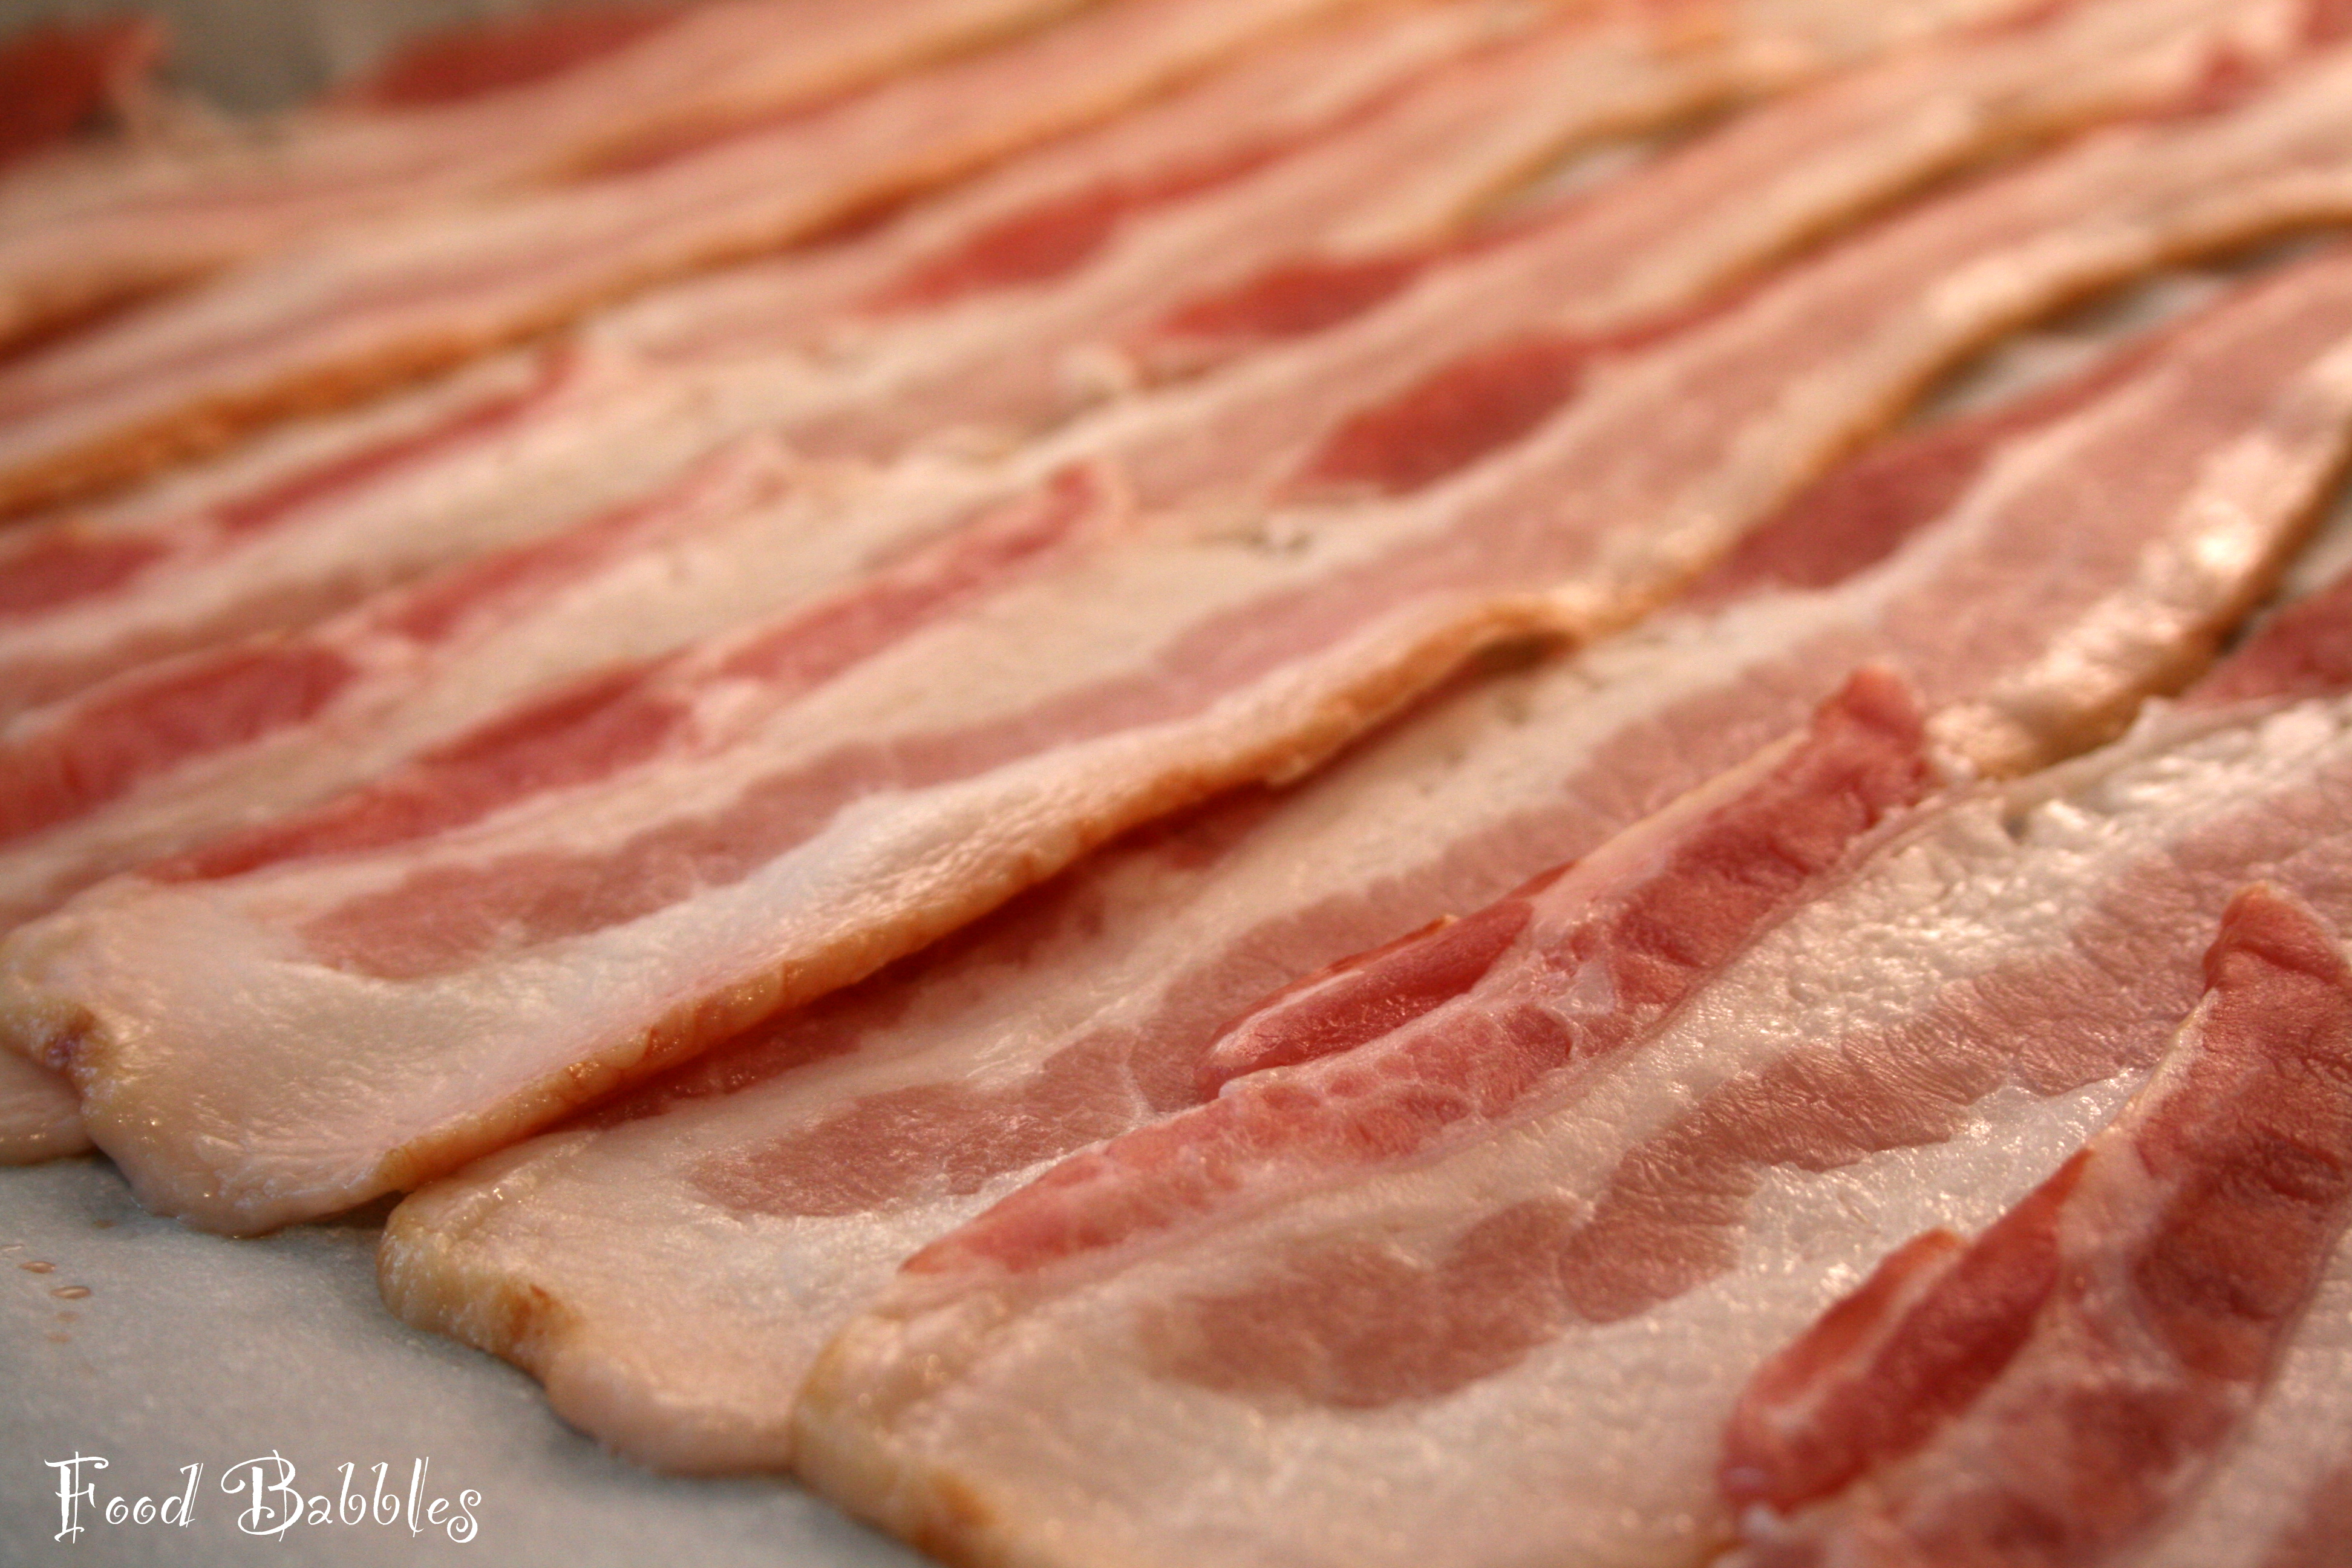 Bacon Wallpapers High Quality   Download Free